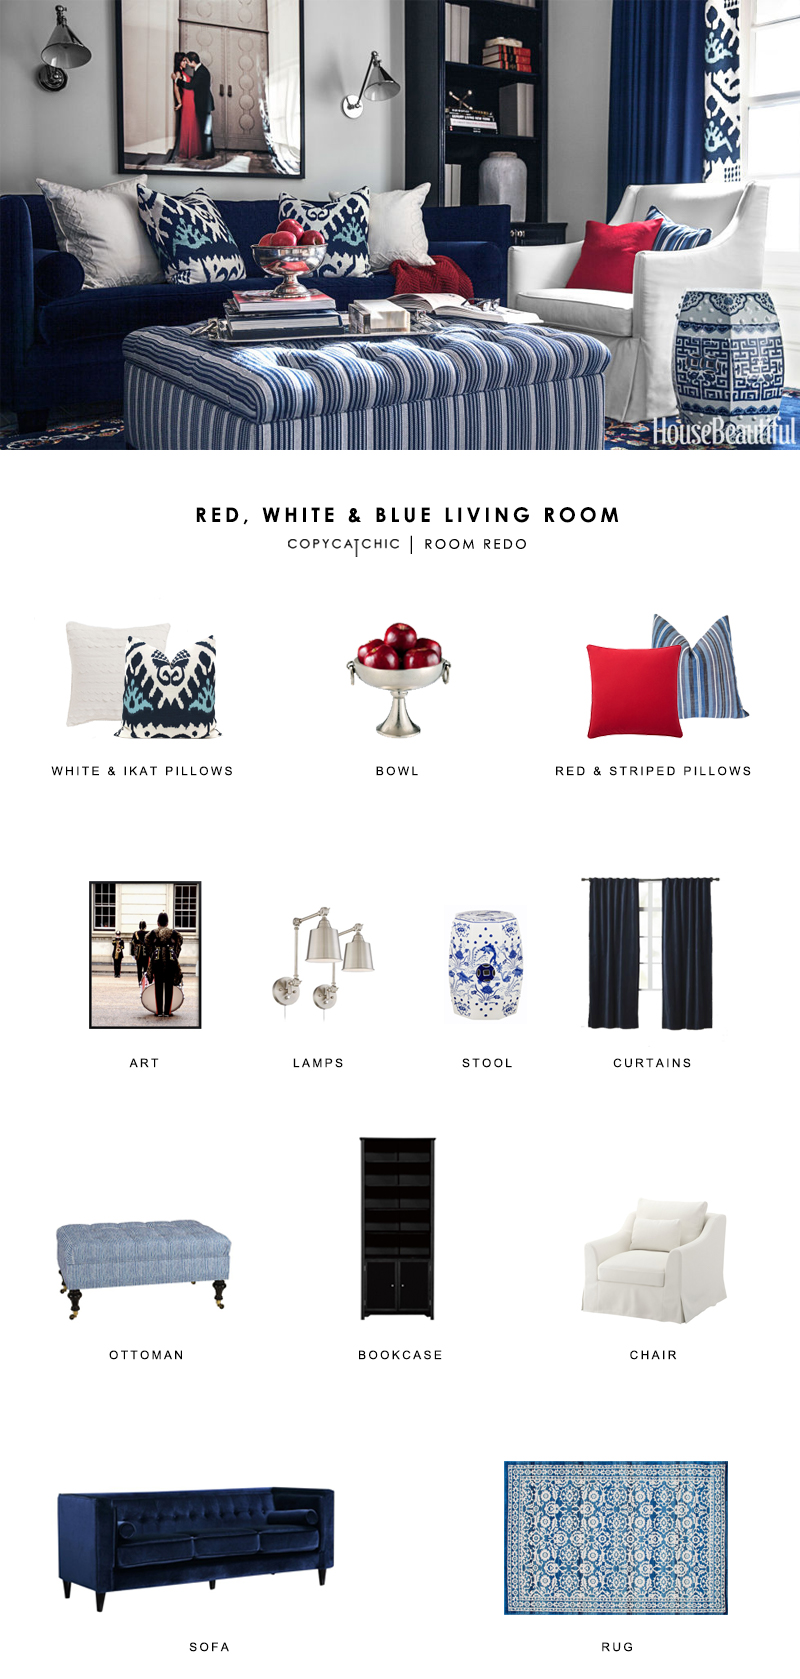 A blue and red chic living room by Mary McDonald gets recreated for less by copycatchic luxe living for less budget home decor and design